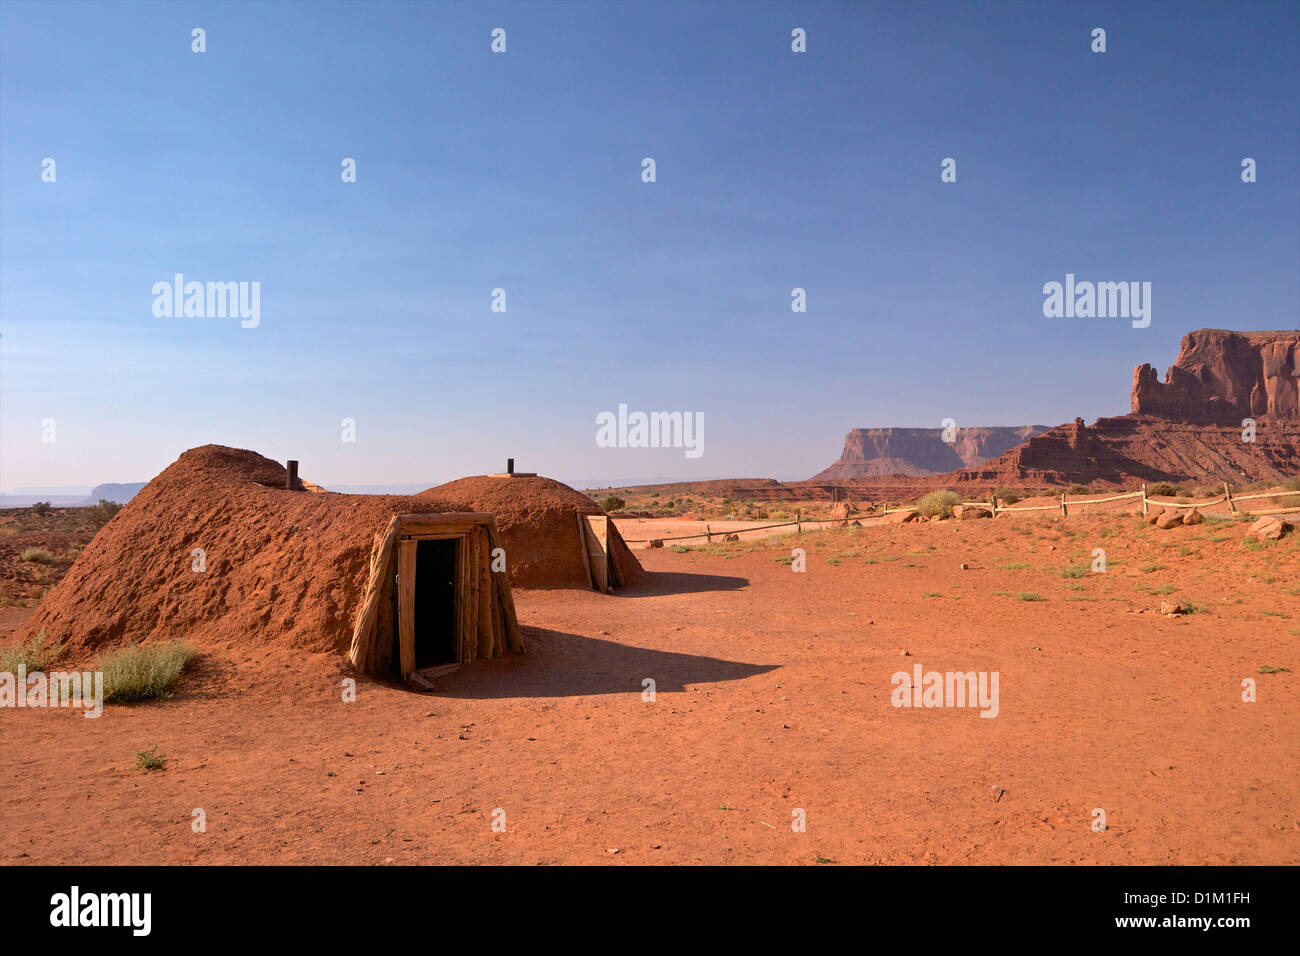 Navajo hogans, traditional dwelling and ceremonial structure, Monument Valley Navajo Tribal Park, Utah, USA - Stock Image